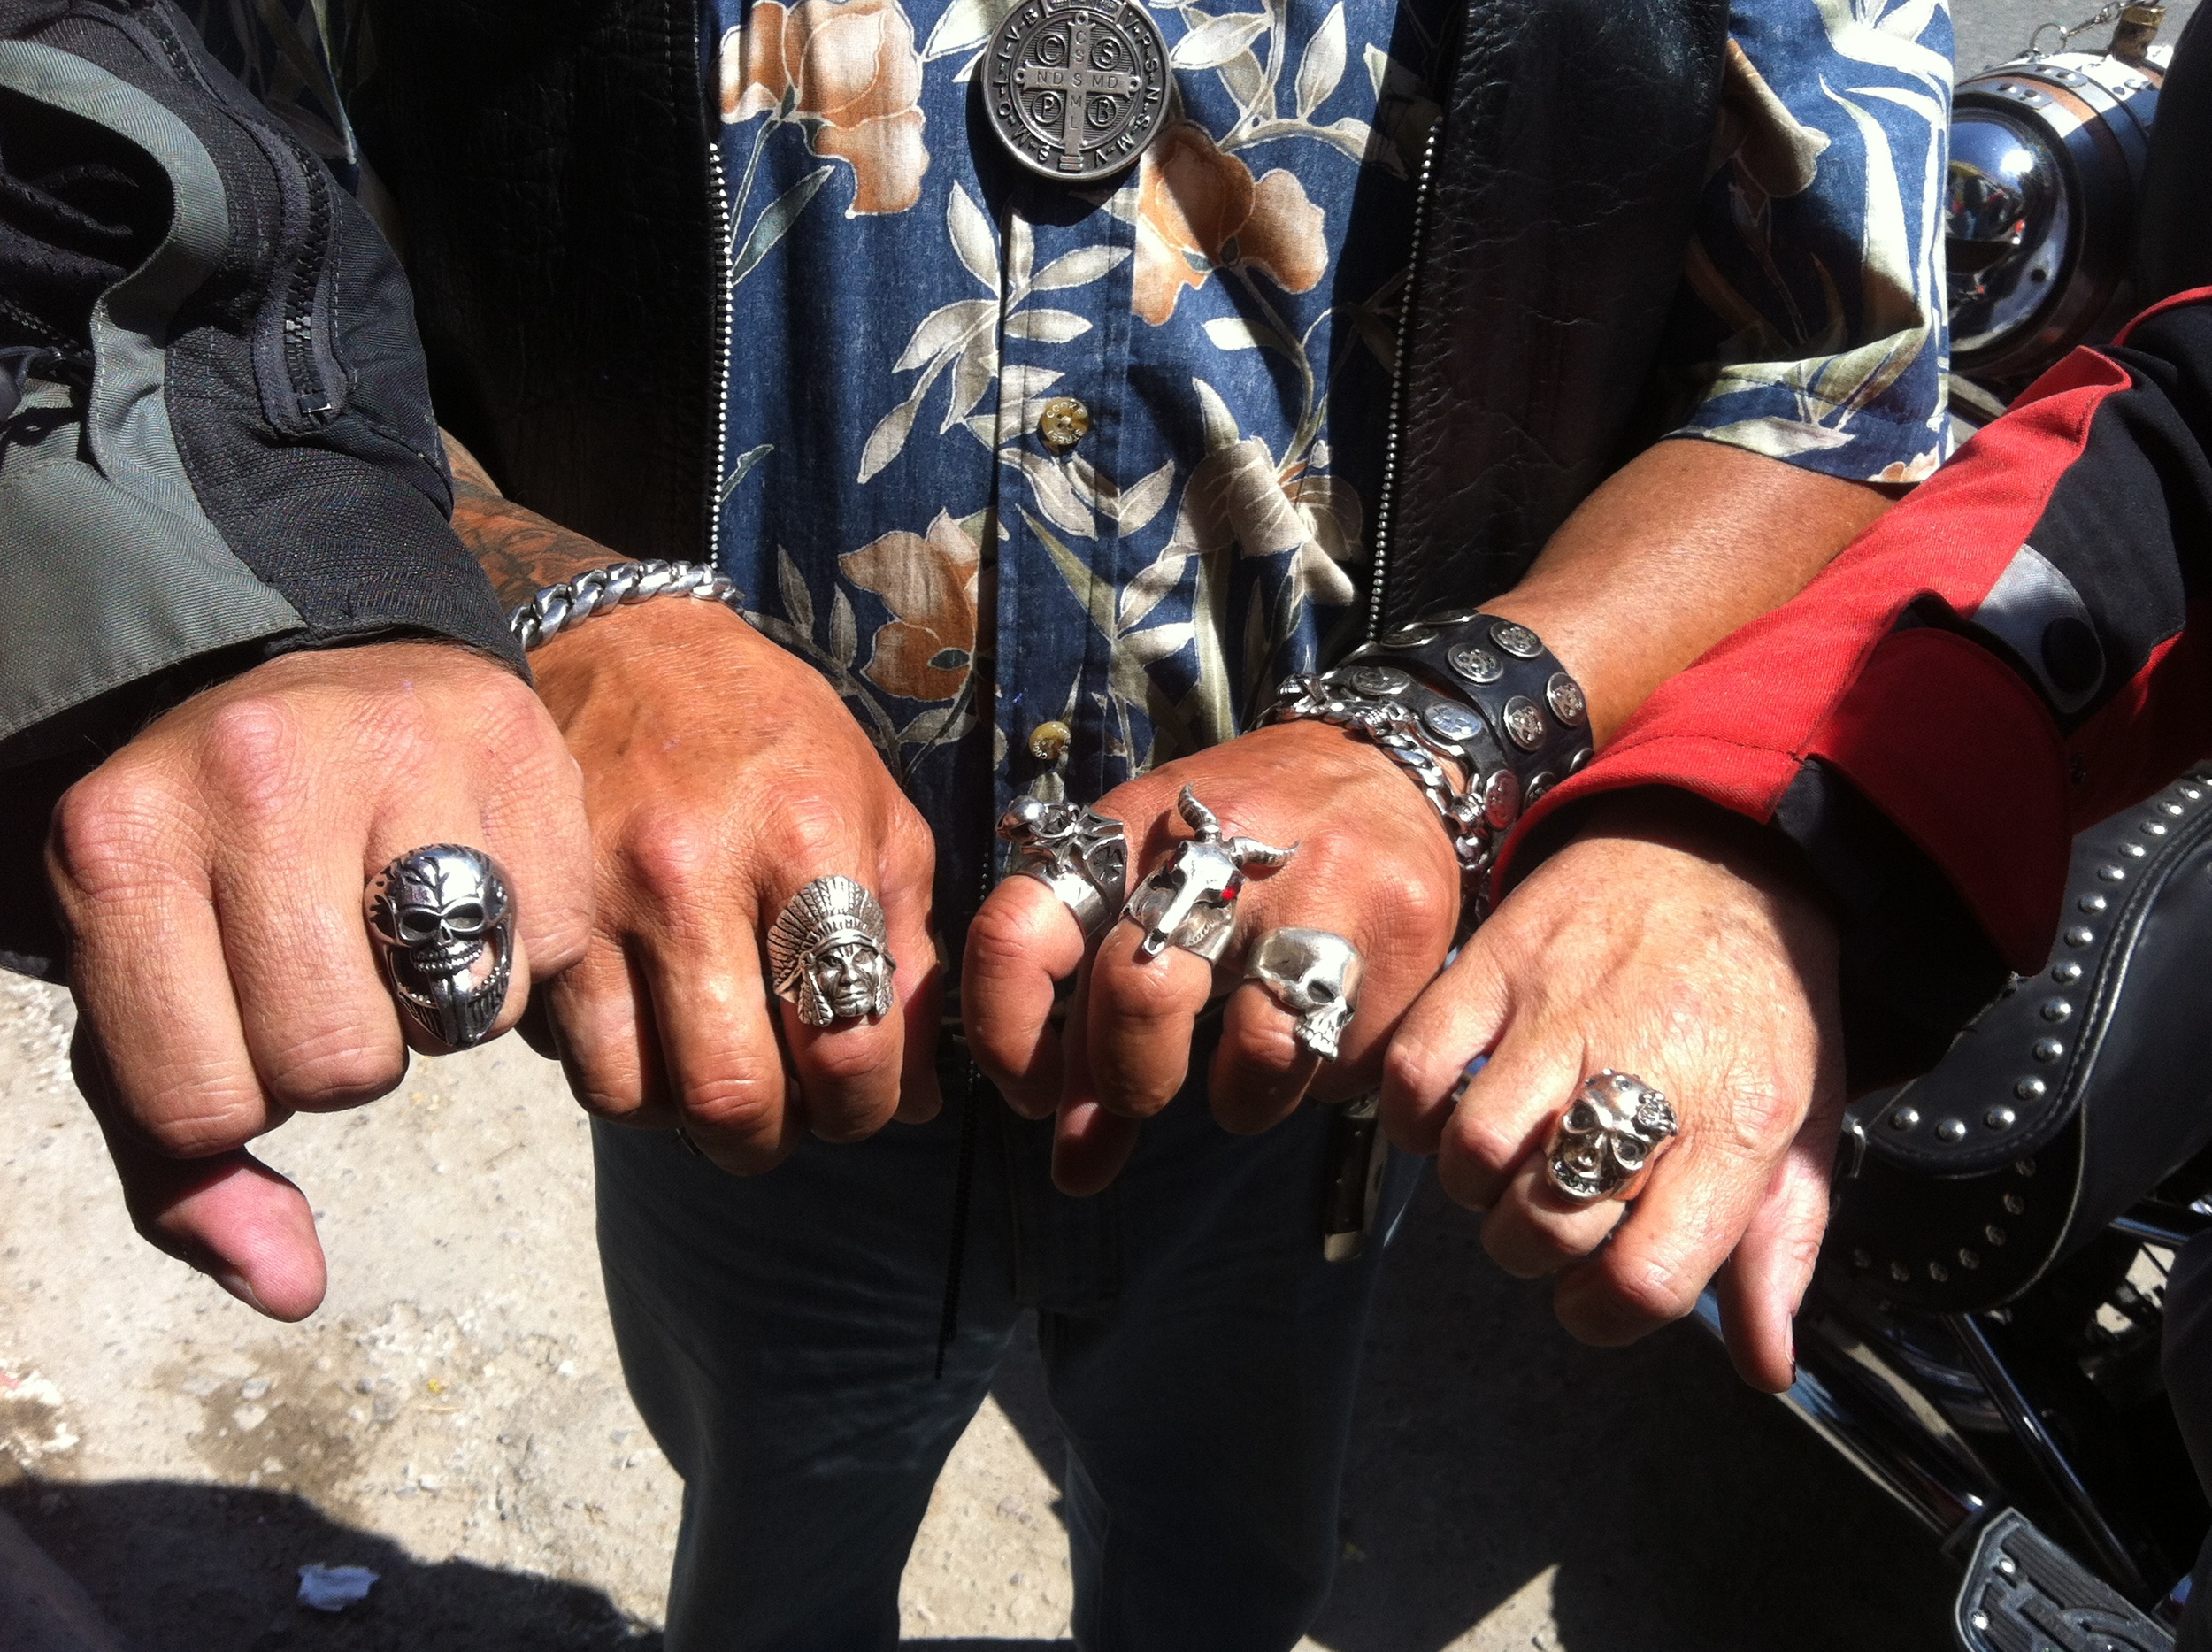 Our new rings!